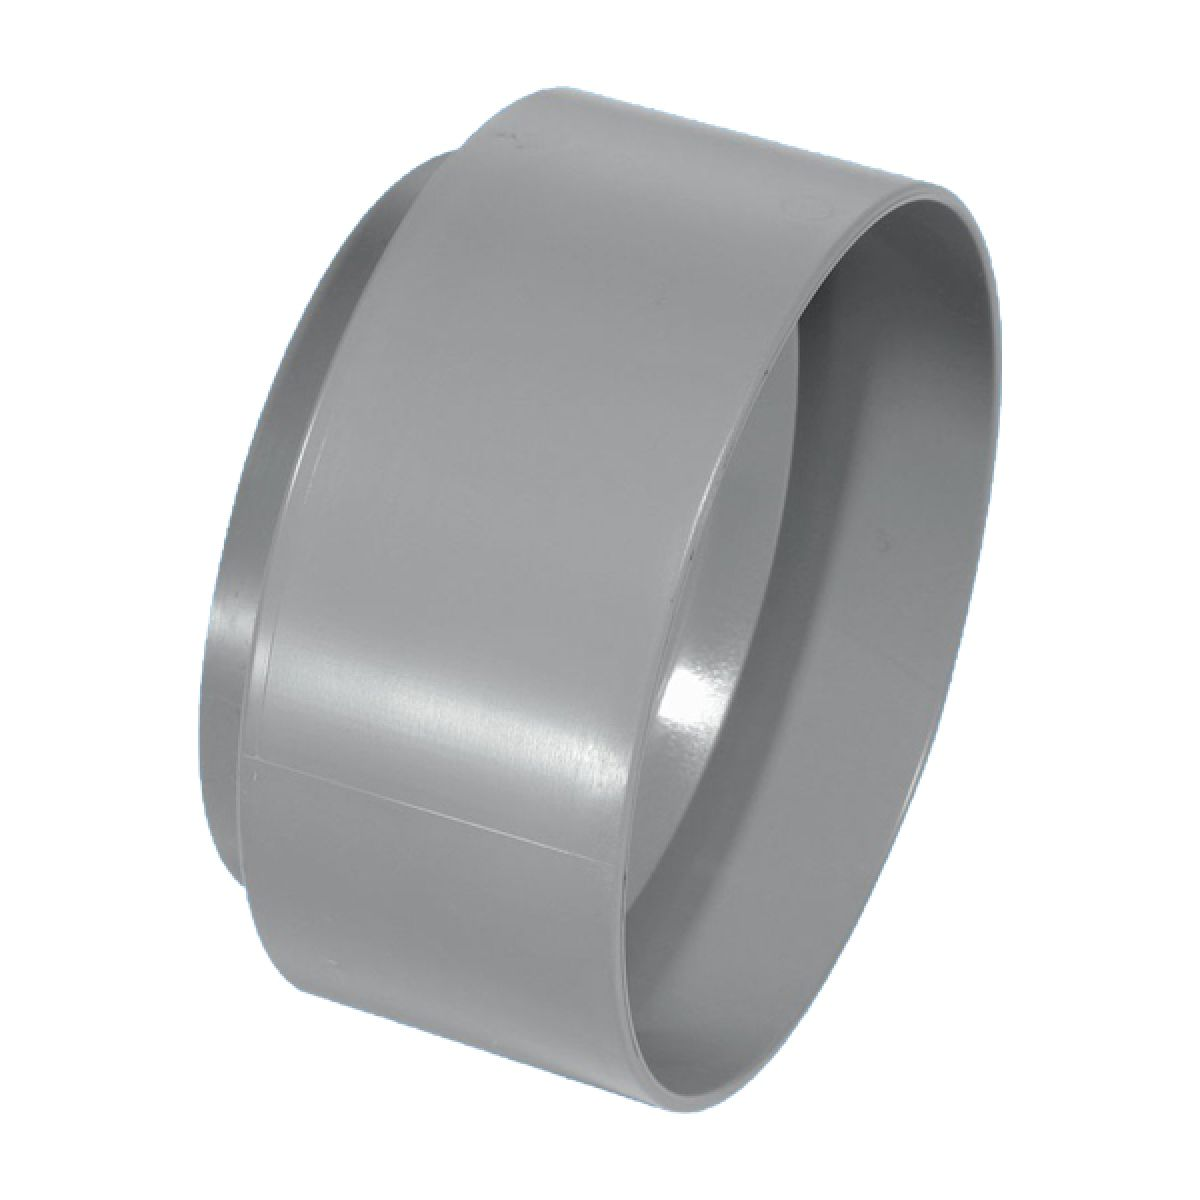 McAlpine MD400 Multi-Drain Outlet Fitting